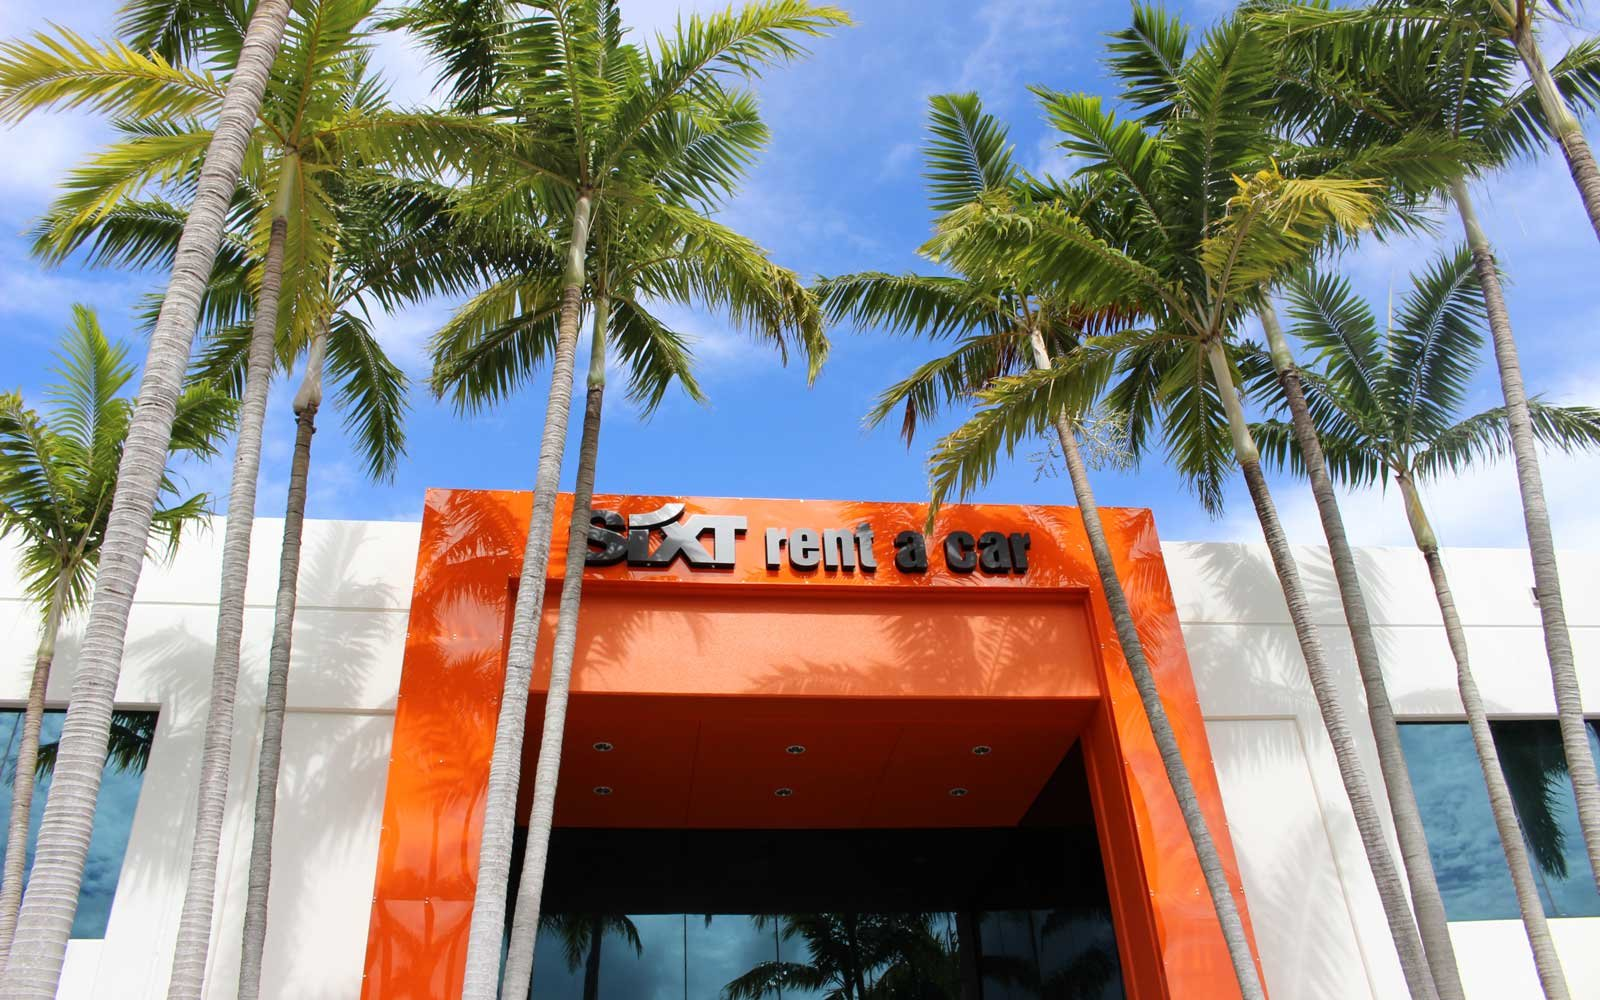 Sixt Rent-a-Car Location